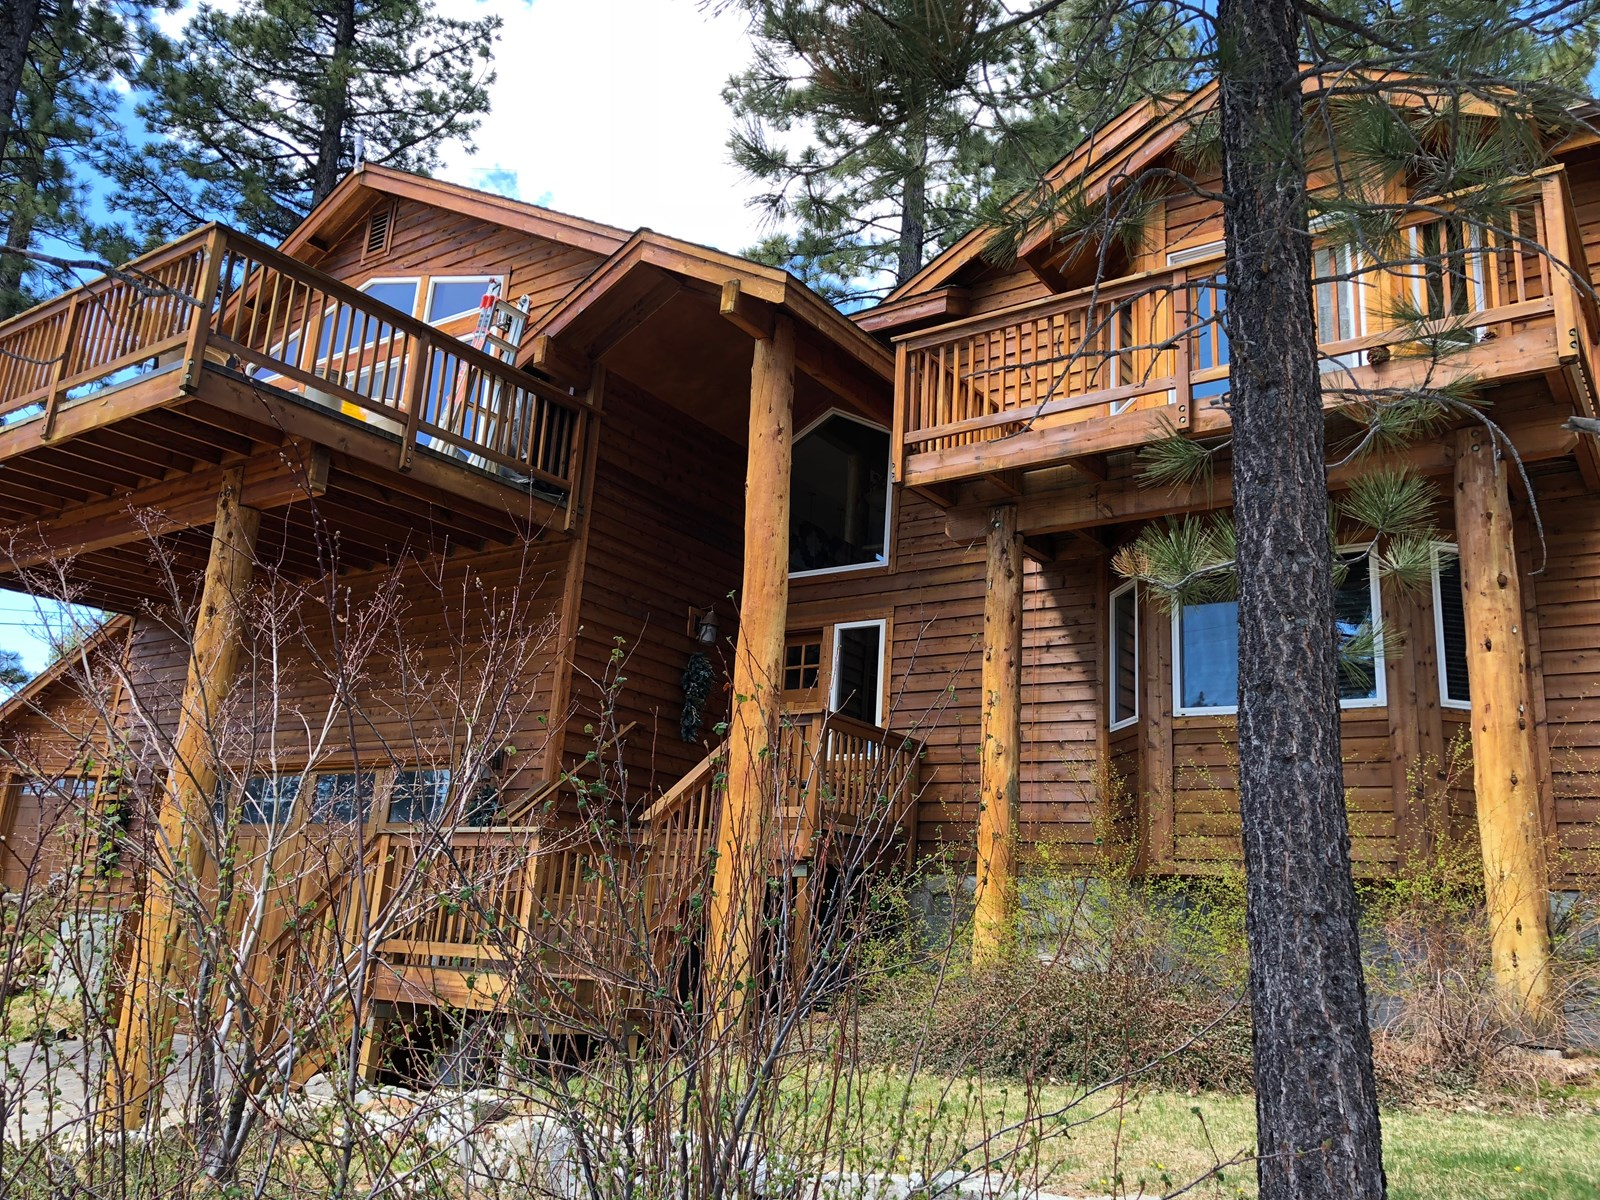 South Lake Tahoe Mountain home for sale near Fallen Leaf